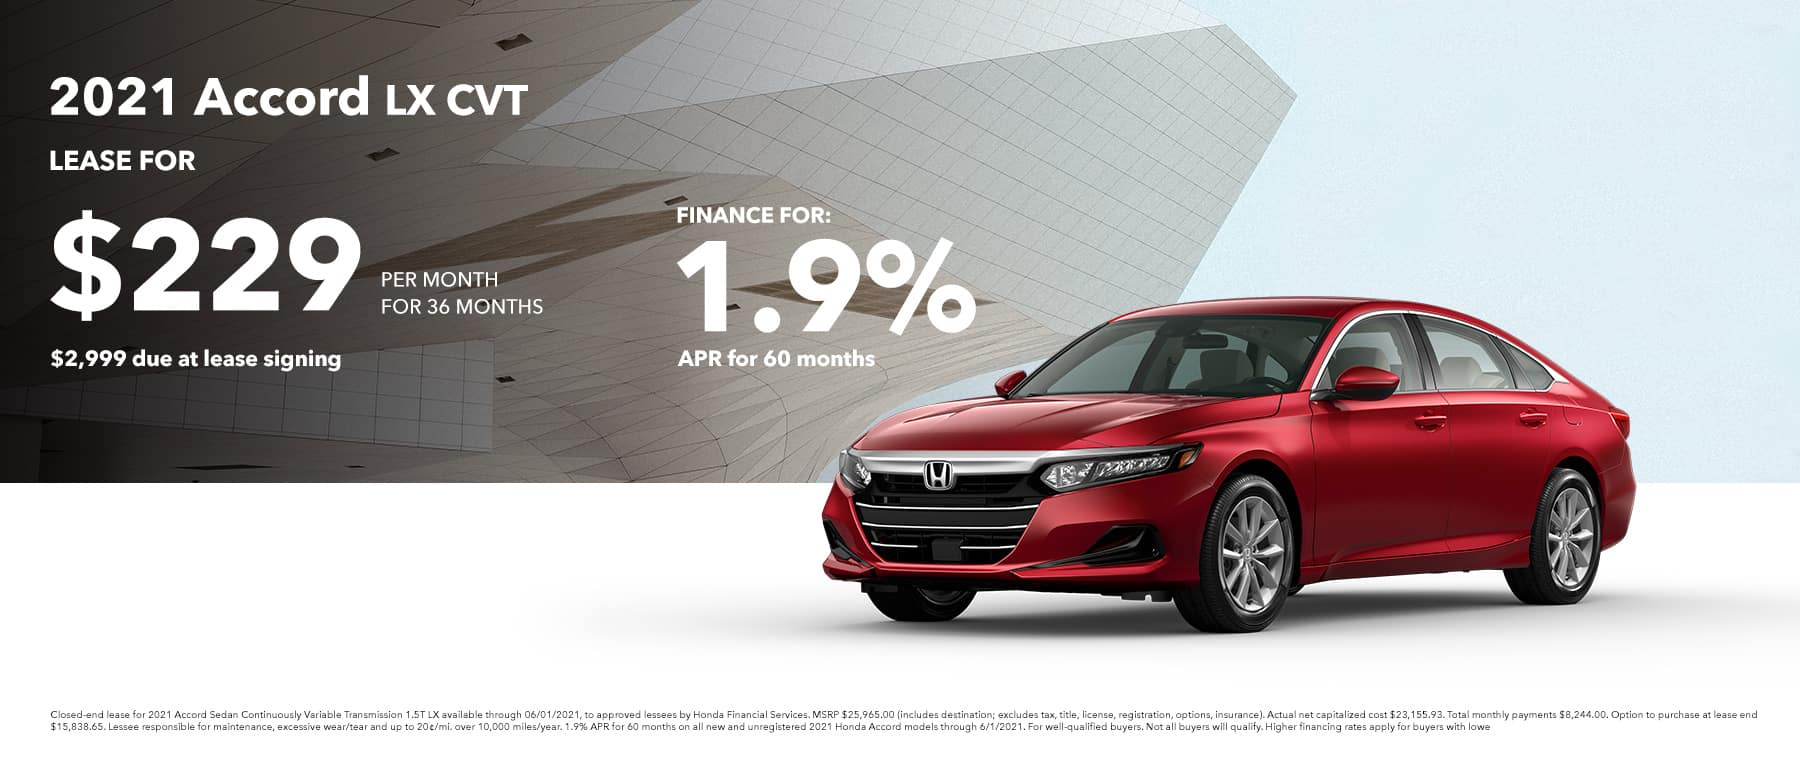 2021 ACCORD LX LEASE FOR: $229 PER MONTH FOR 36 MONTHS $2,999 DUE AT SIGNING FINANCE FOR 1.9% FOR 60 MONTHS